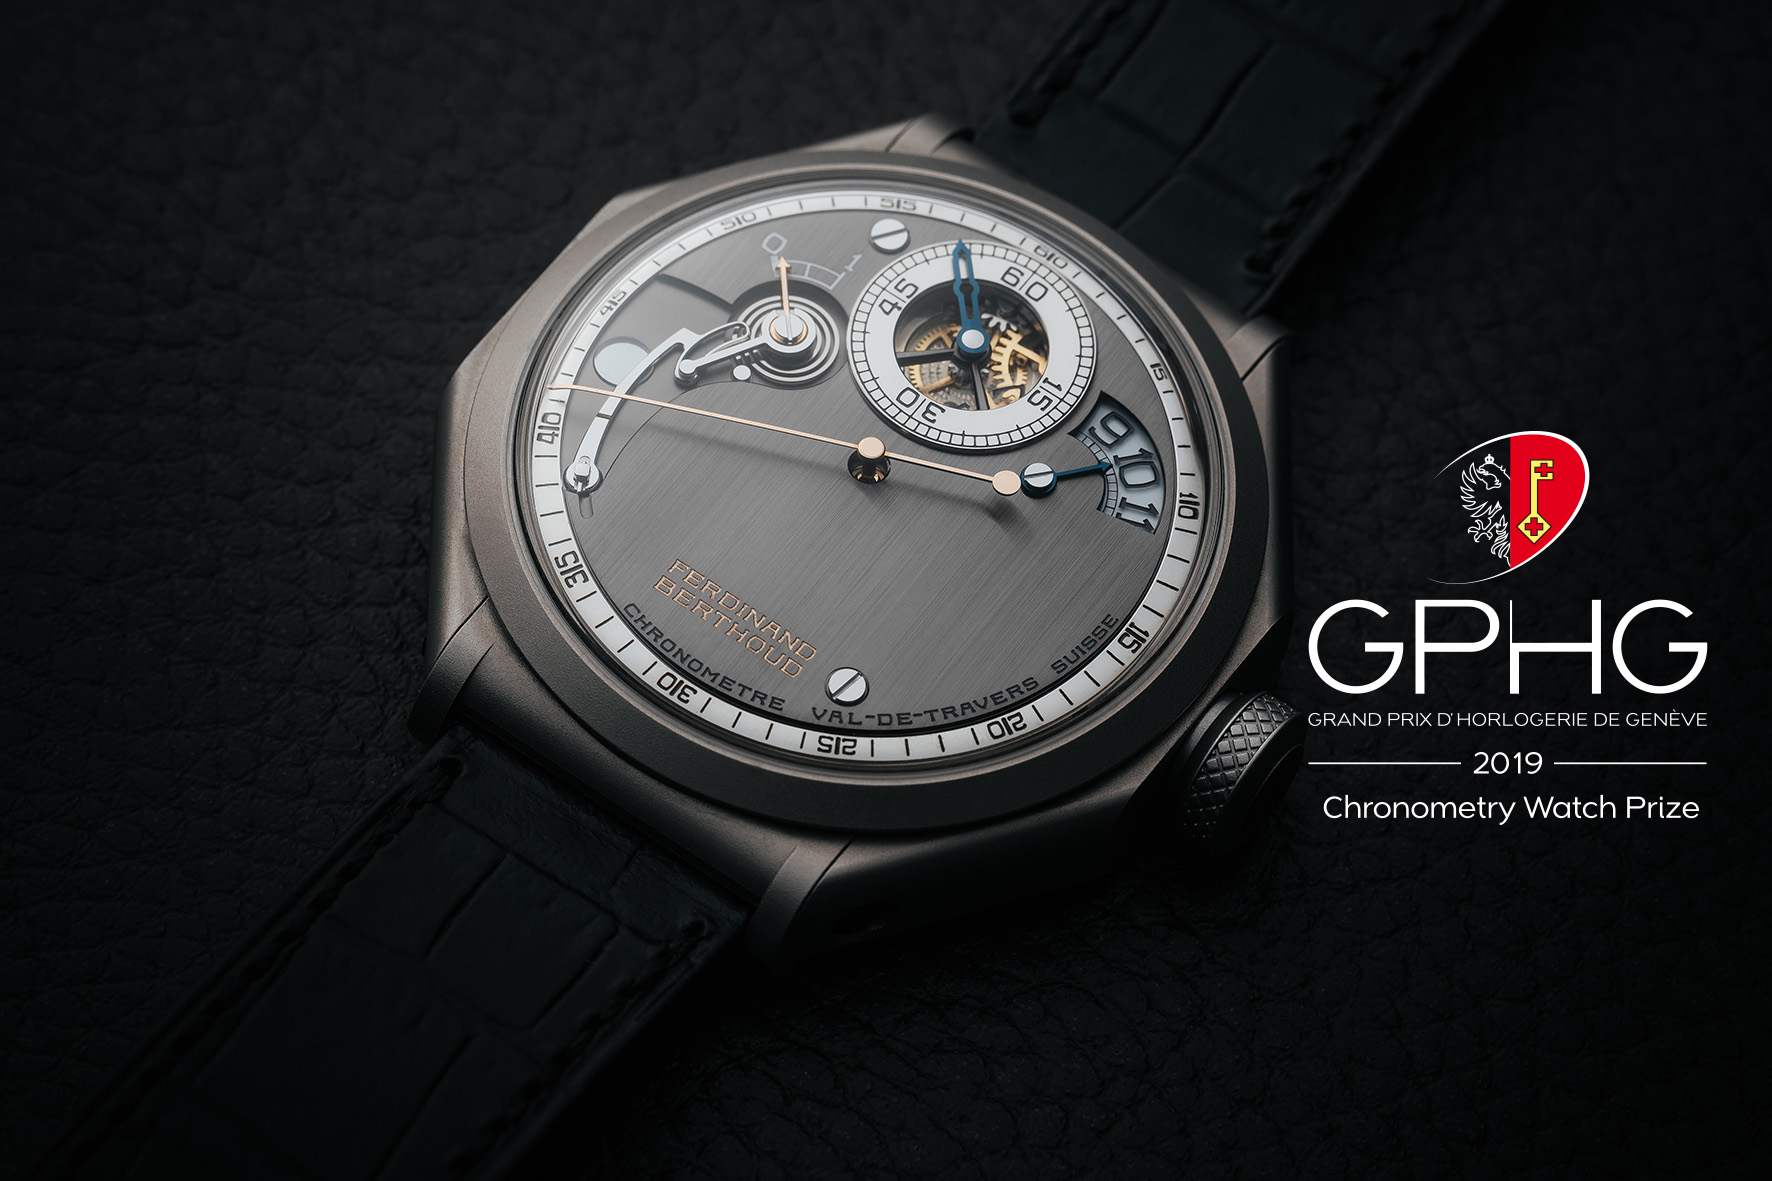 CHRONOMÉTRIE FERDINAND BERTHOUD HONOURED AT THE 2019 GRAND PRIX D'HORLOGERIE DE GENÈVE (GPHG)